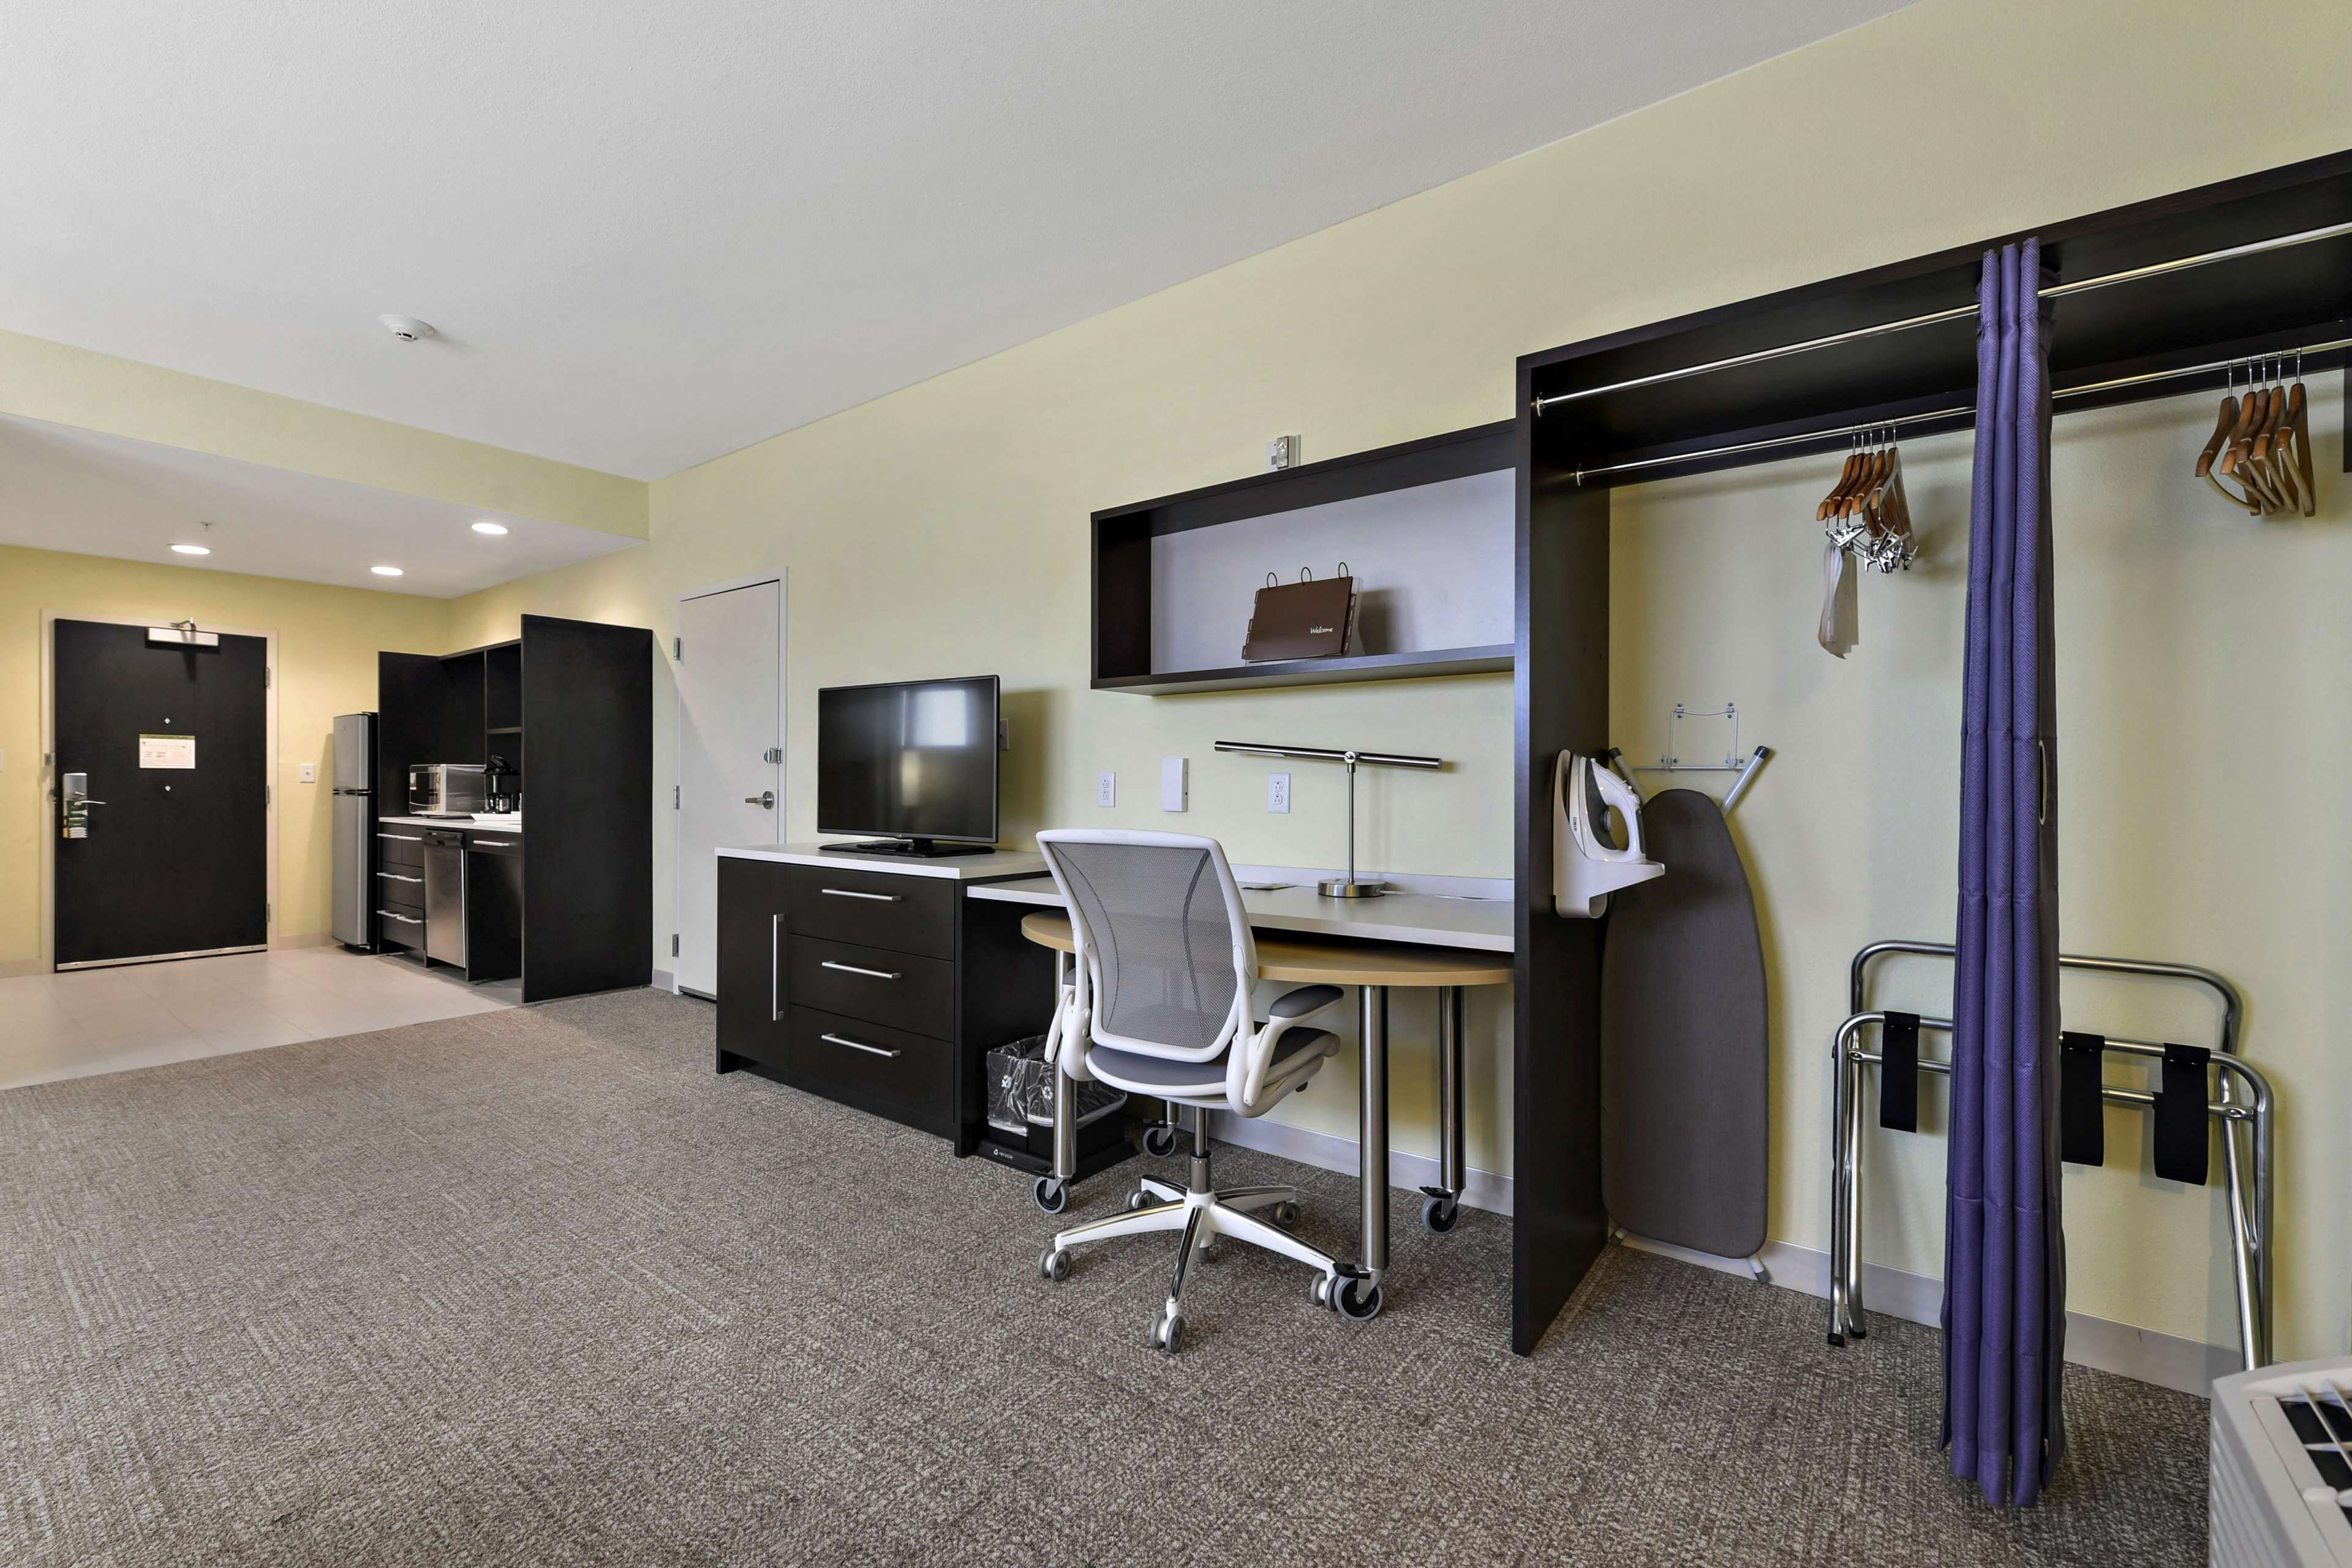 Home2 Suites by Hilton Gulfport I-10 image 26